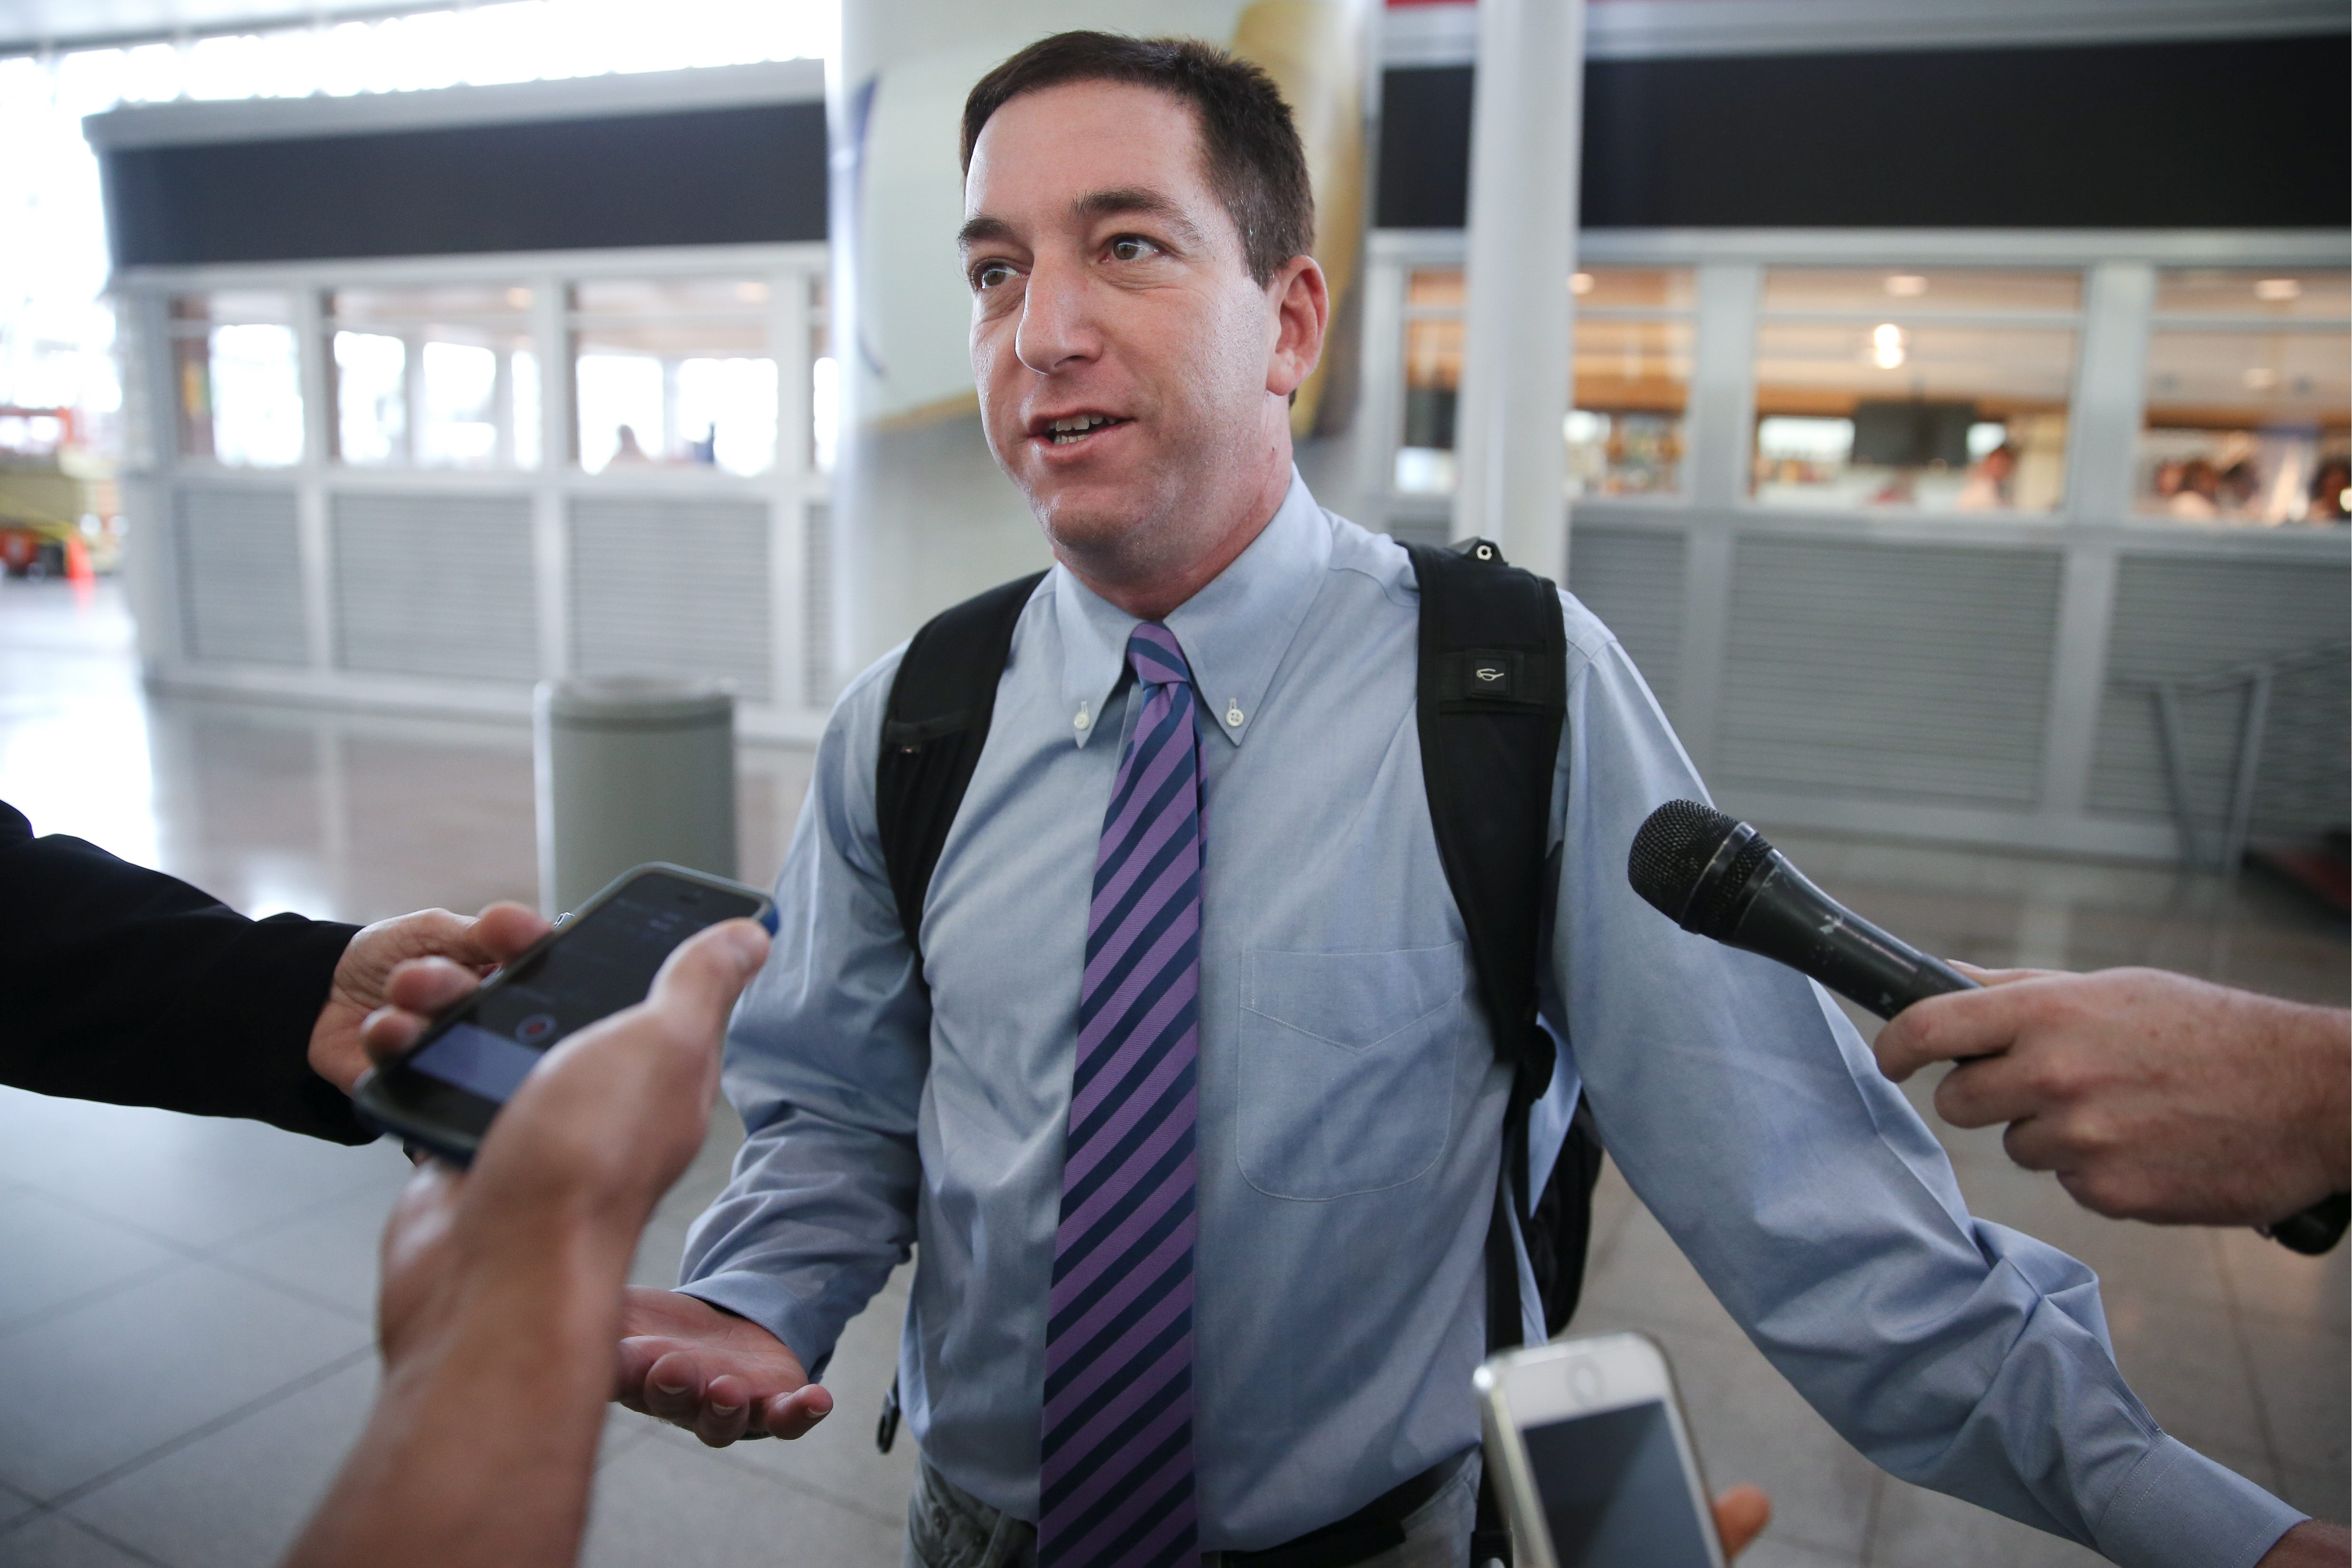 It S Been Real Pubg But I M Ready To Move On: Glenn Greenwald Detained At US Border